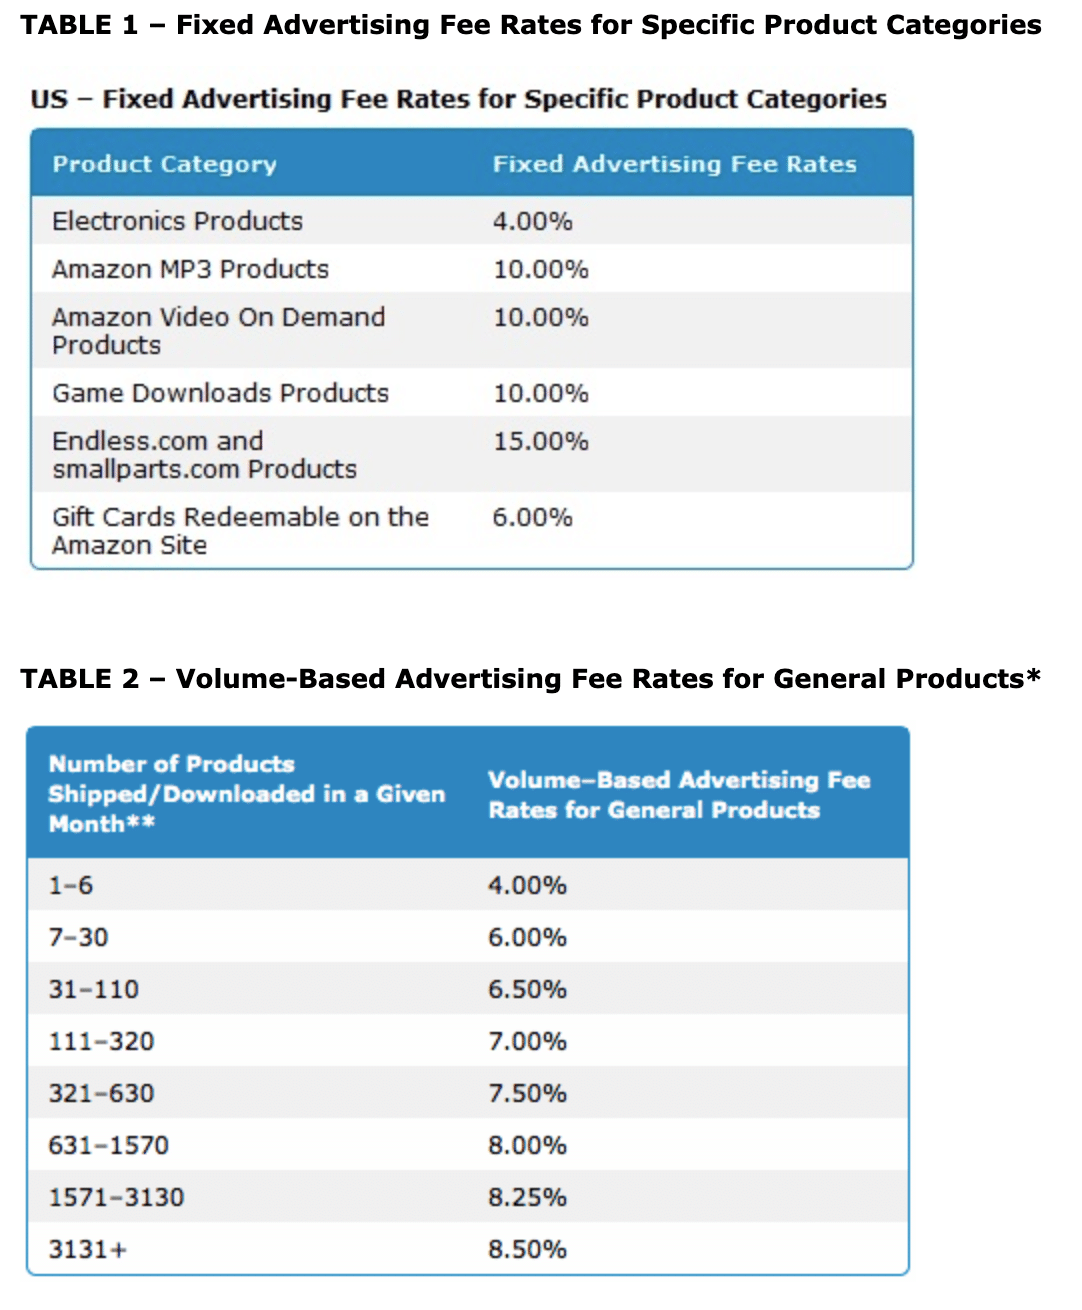 Fixed Advertising Fee Rates for Specific Product Categories and Volume-Based Advertising Fee Rates for General Products